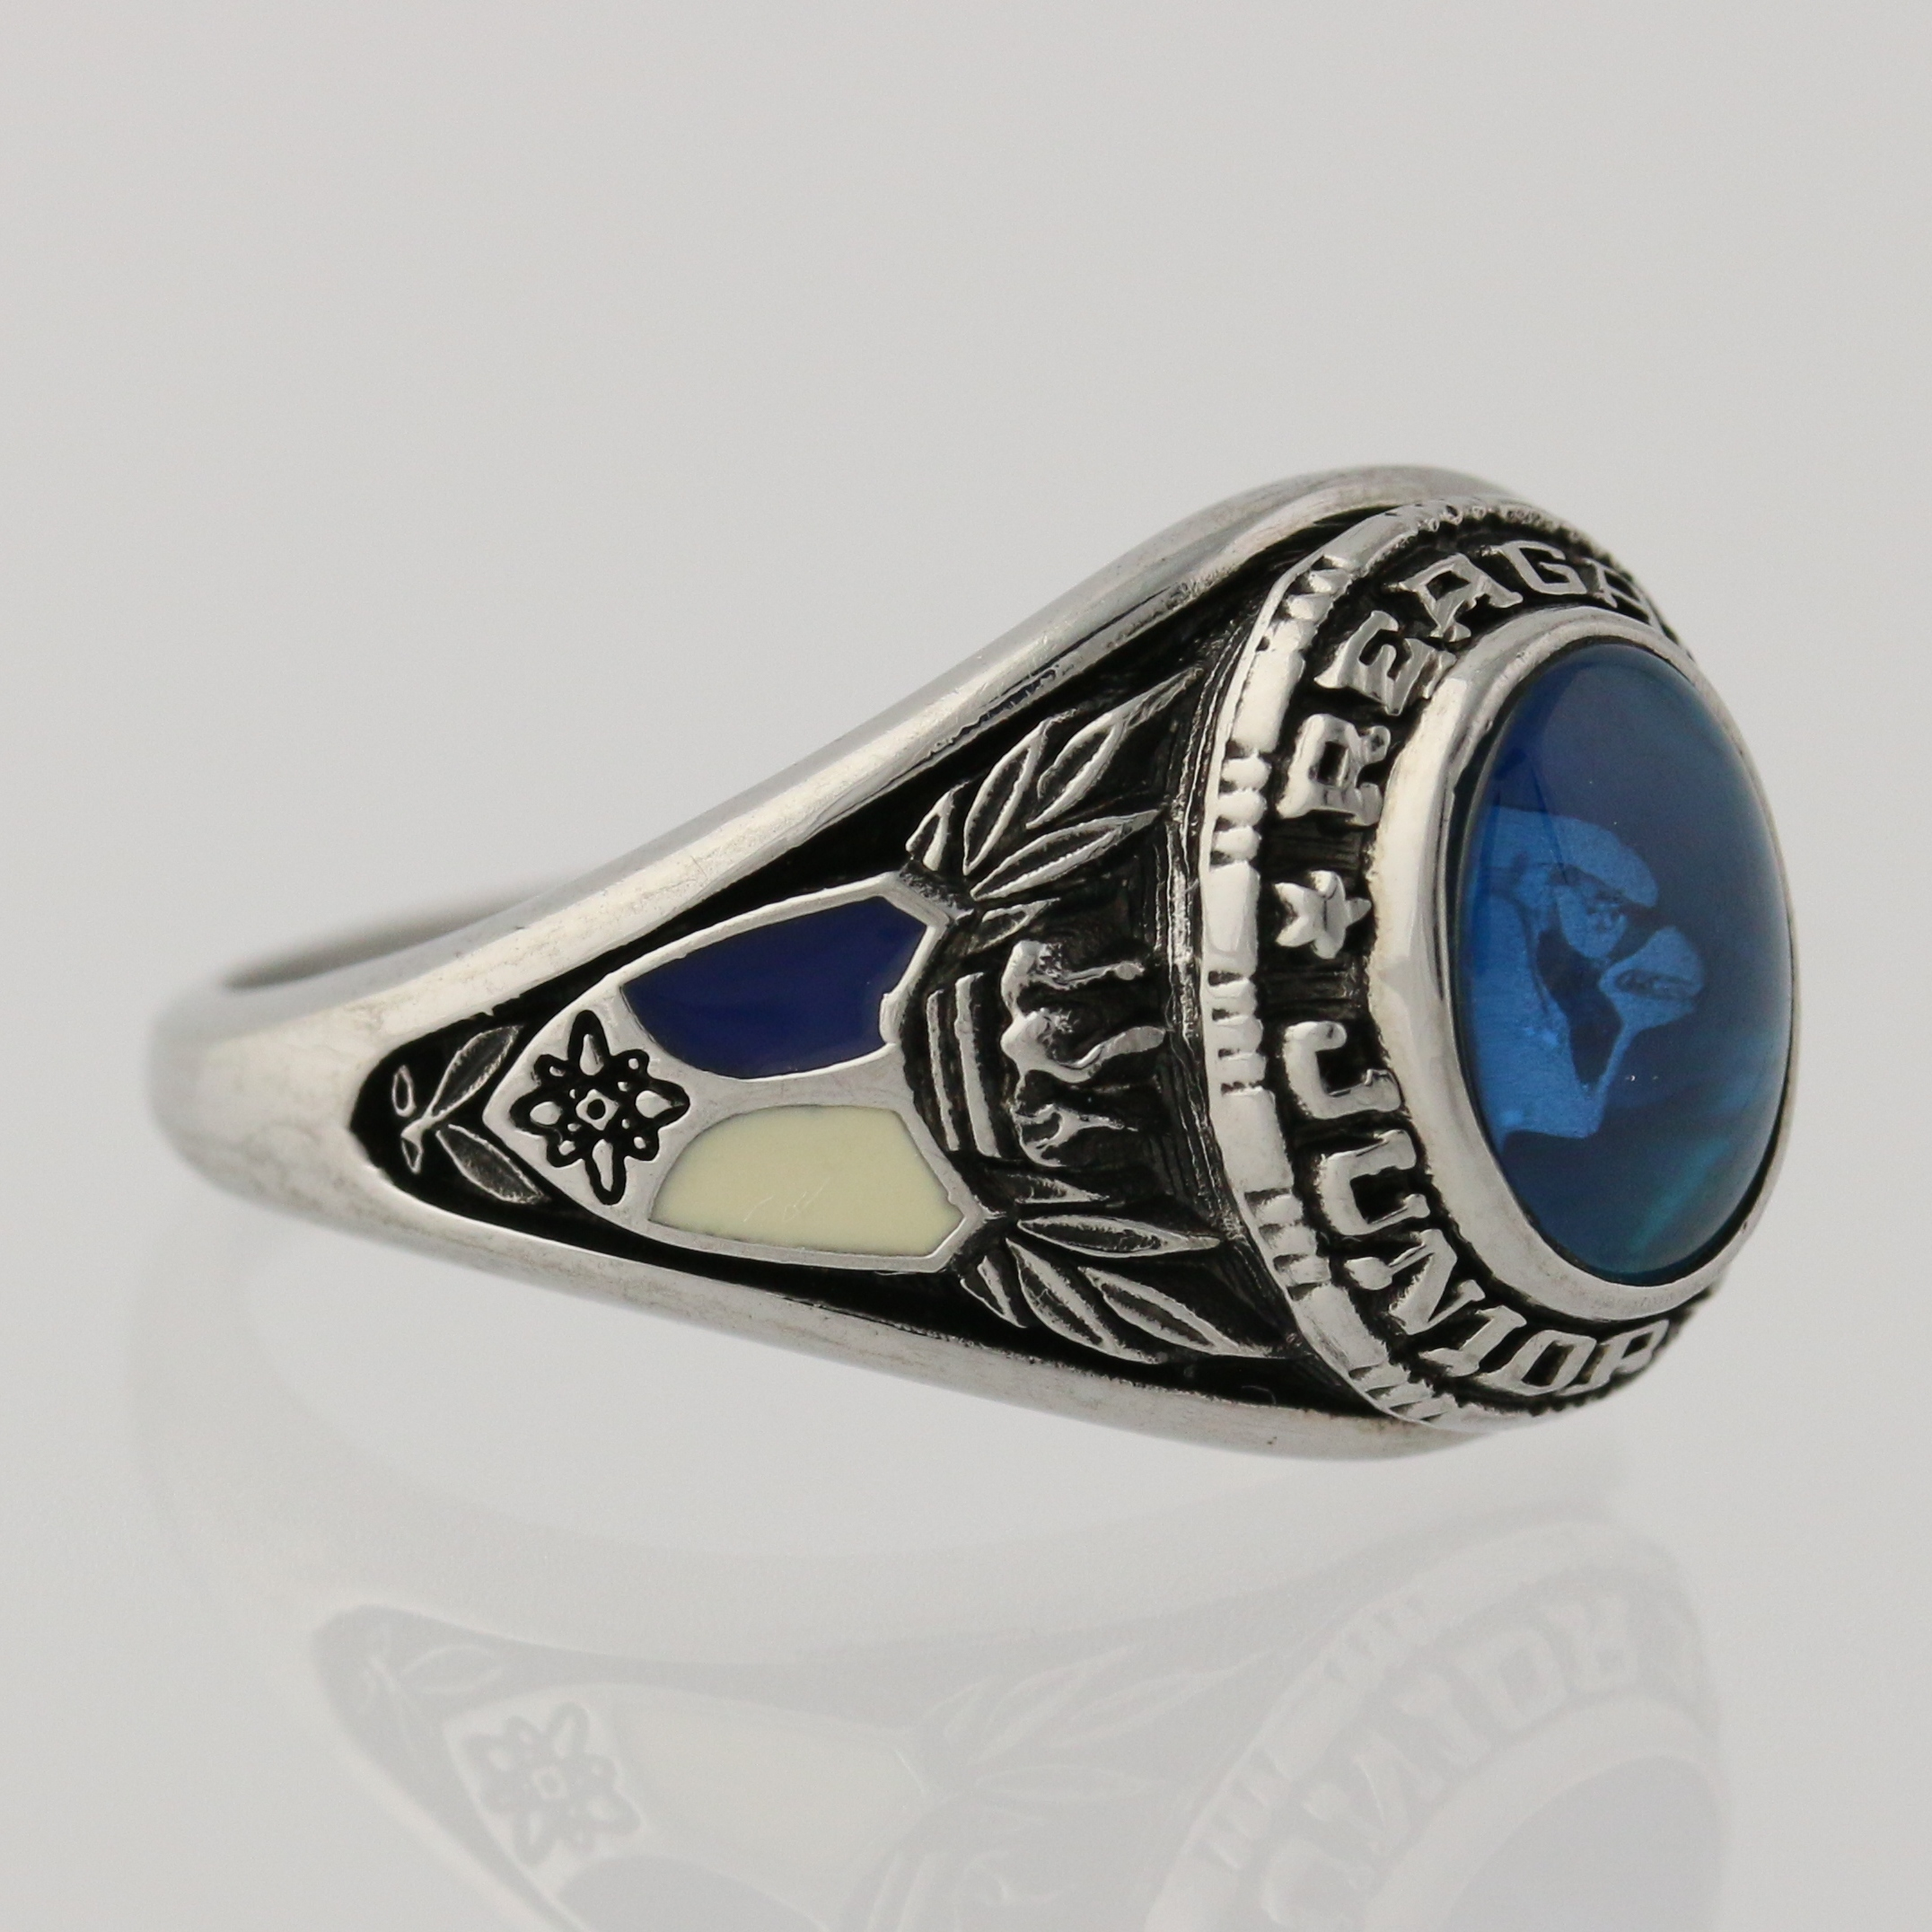 class ring Find great deals on ebay for class rings shop with confidence.